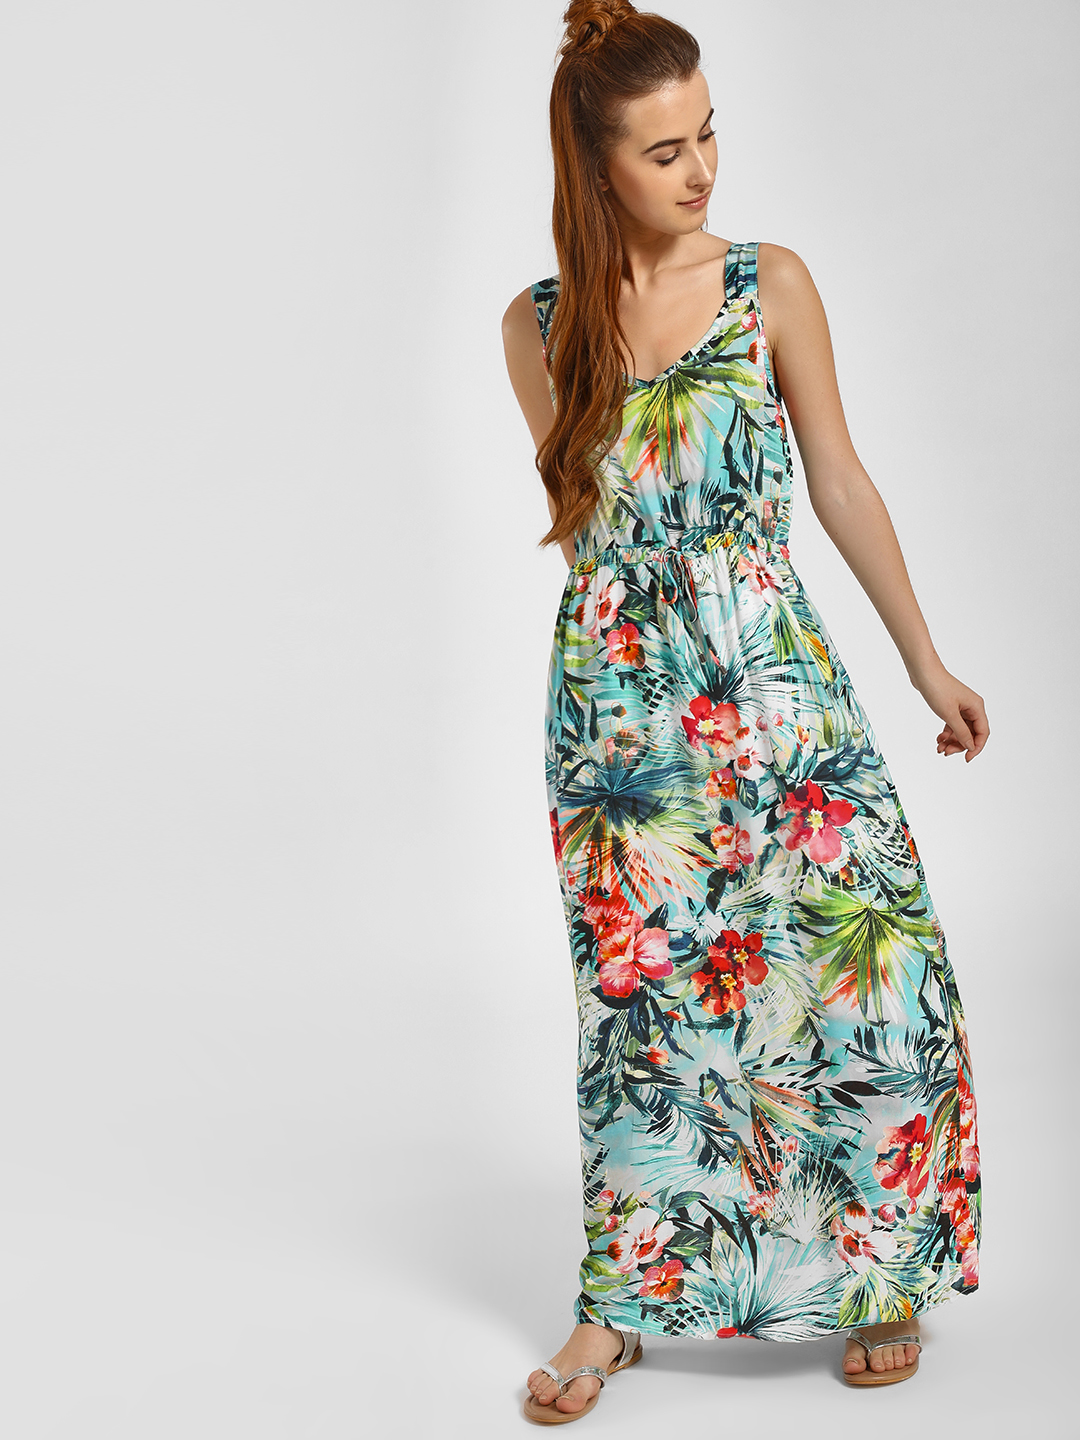 LC Waikiki Multi Tropical Floral Print Maxi Dress 1